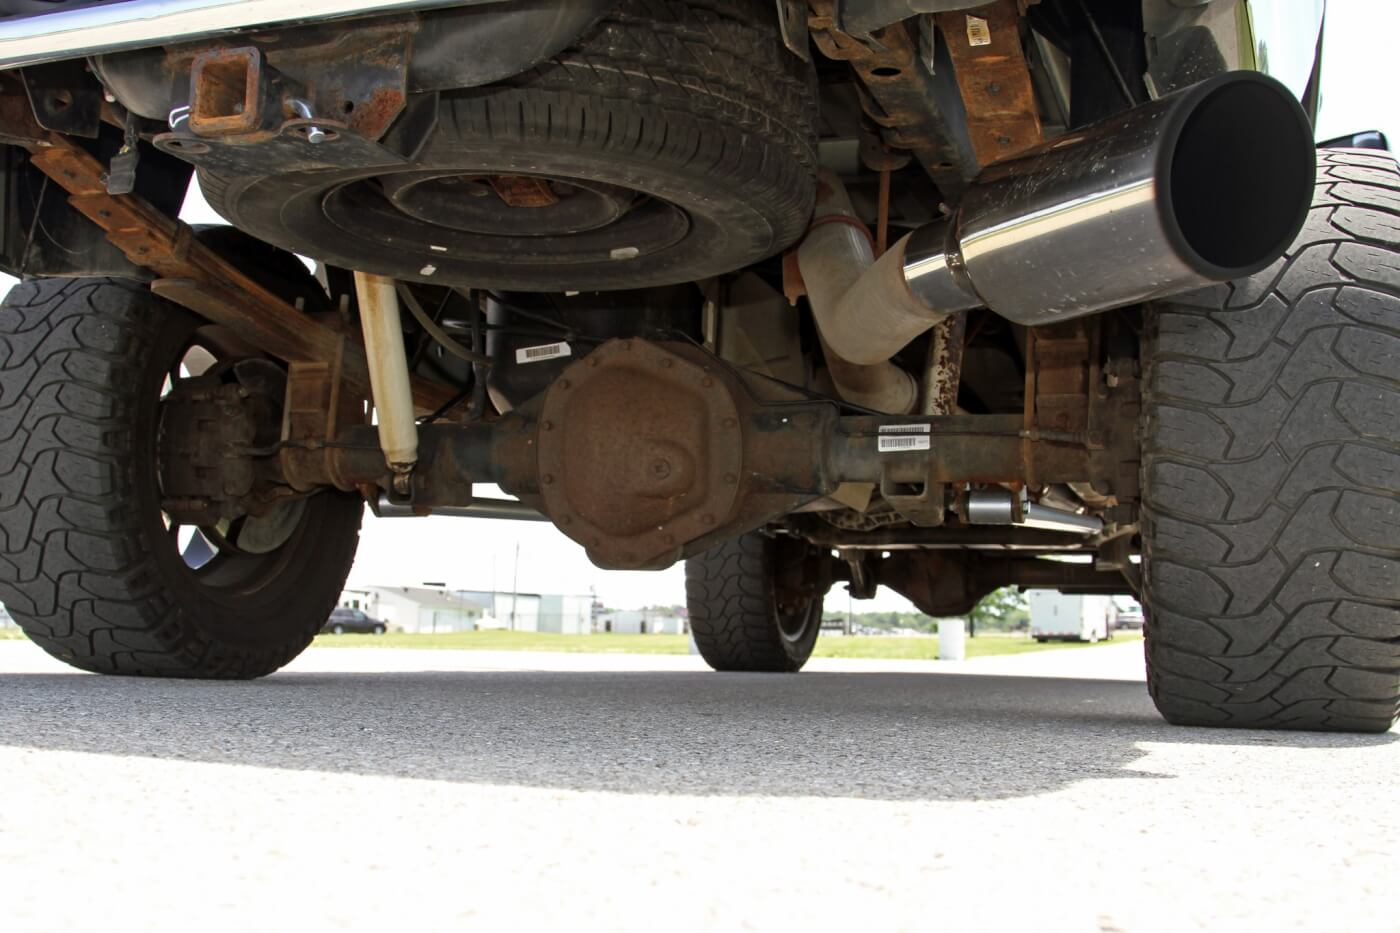 Looking at the rear side of the axle, you can see the 4-inch exhaust system capped off with a 7-inch polished tip.